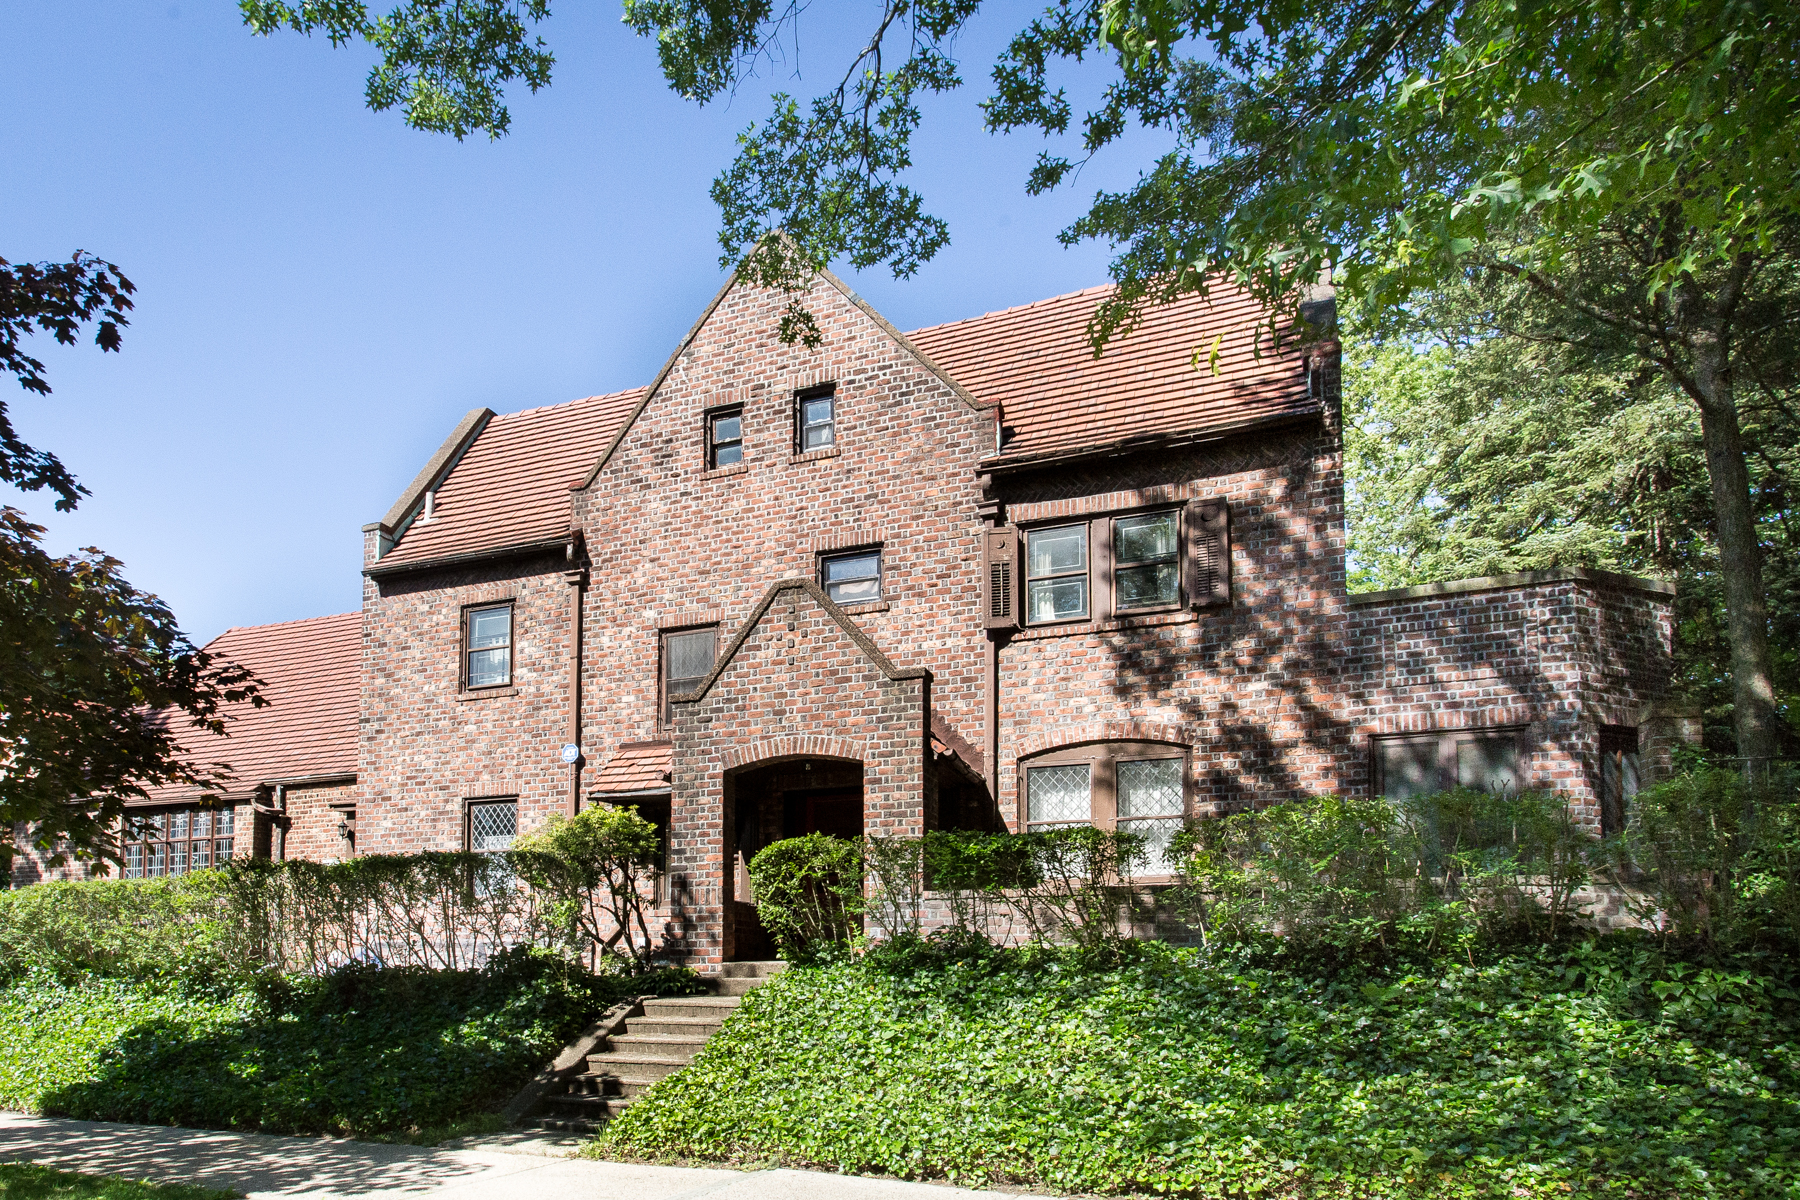 """Single Family Homes for Sale at """"REGAL EMBASSY ROW RESIDENCE"""" 254 Greenway North, Forest Hills Gardens, Queens, New York 11375 United States"""